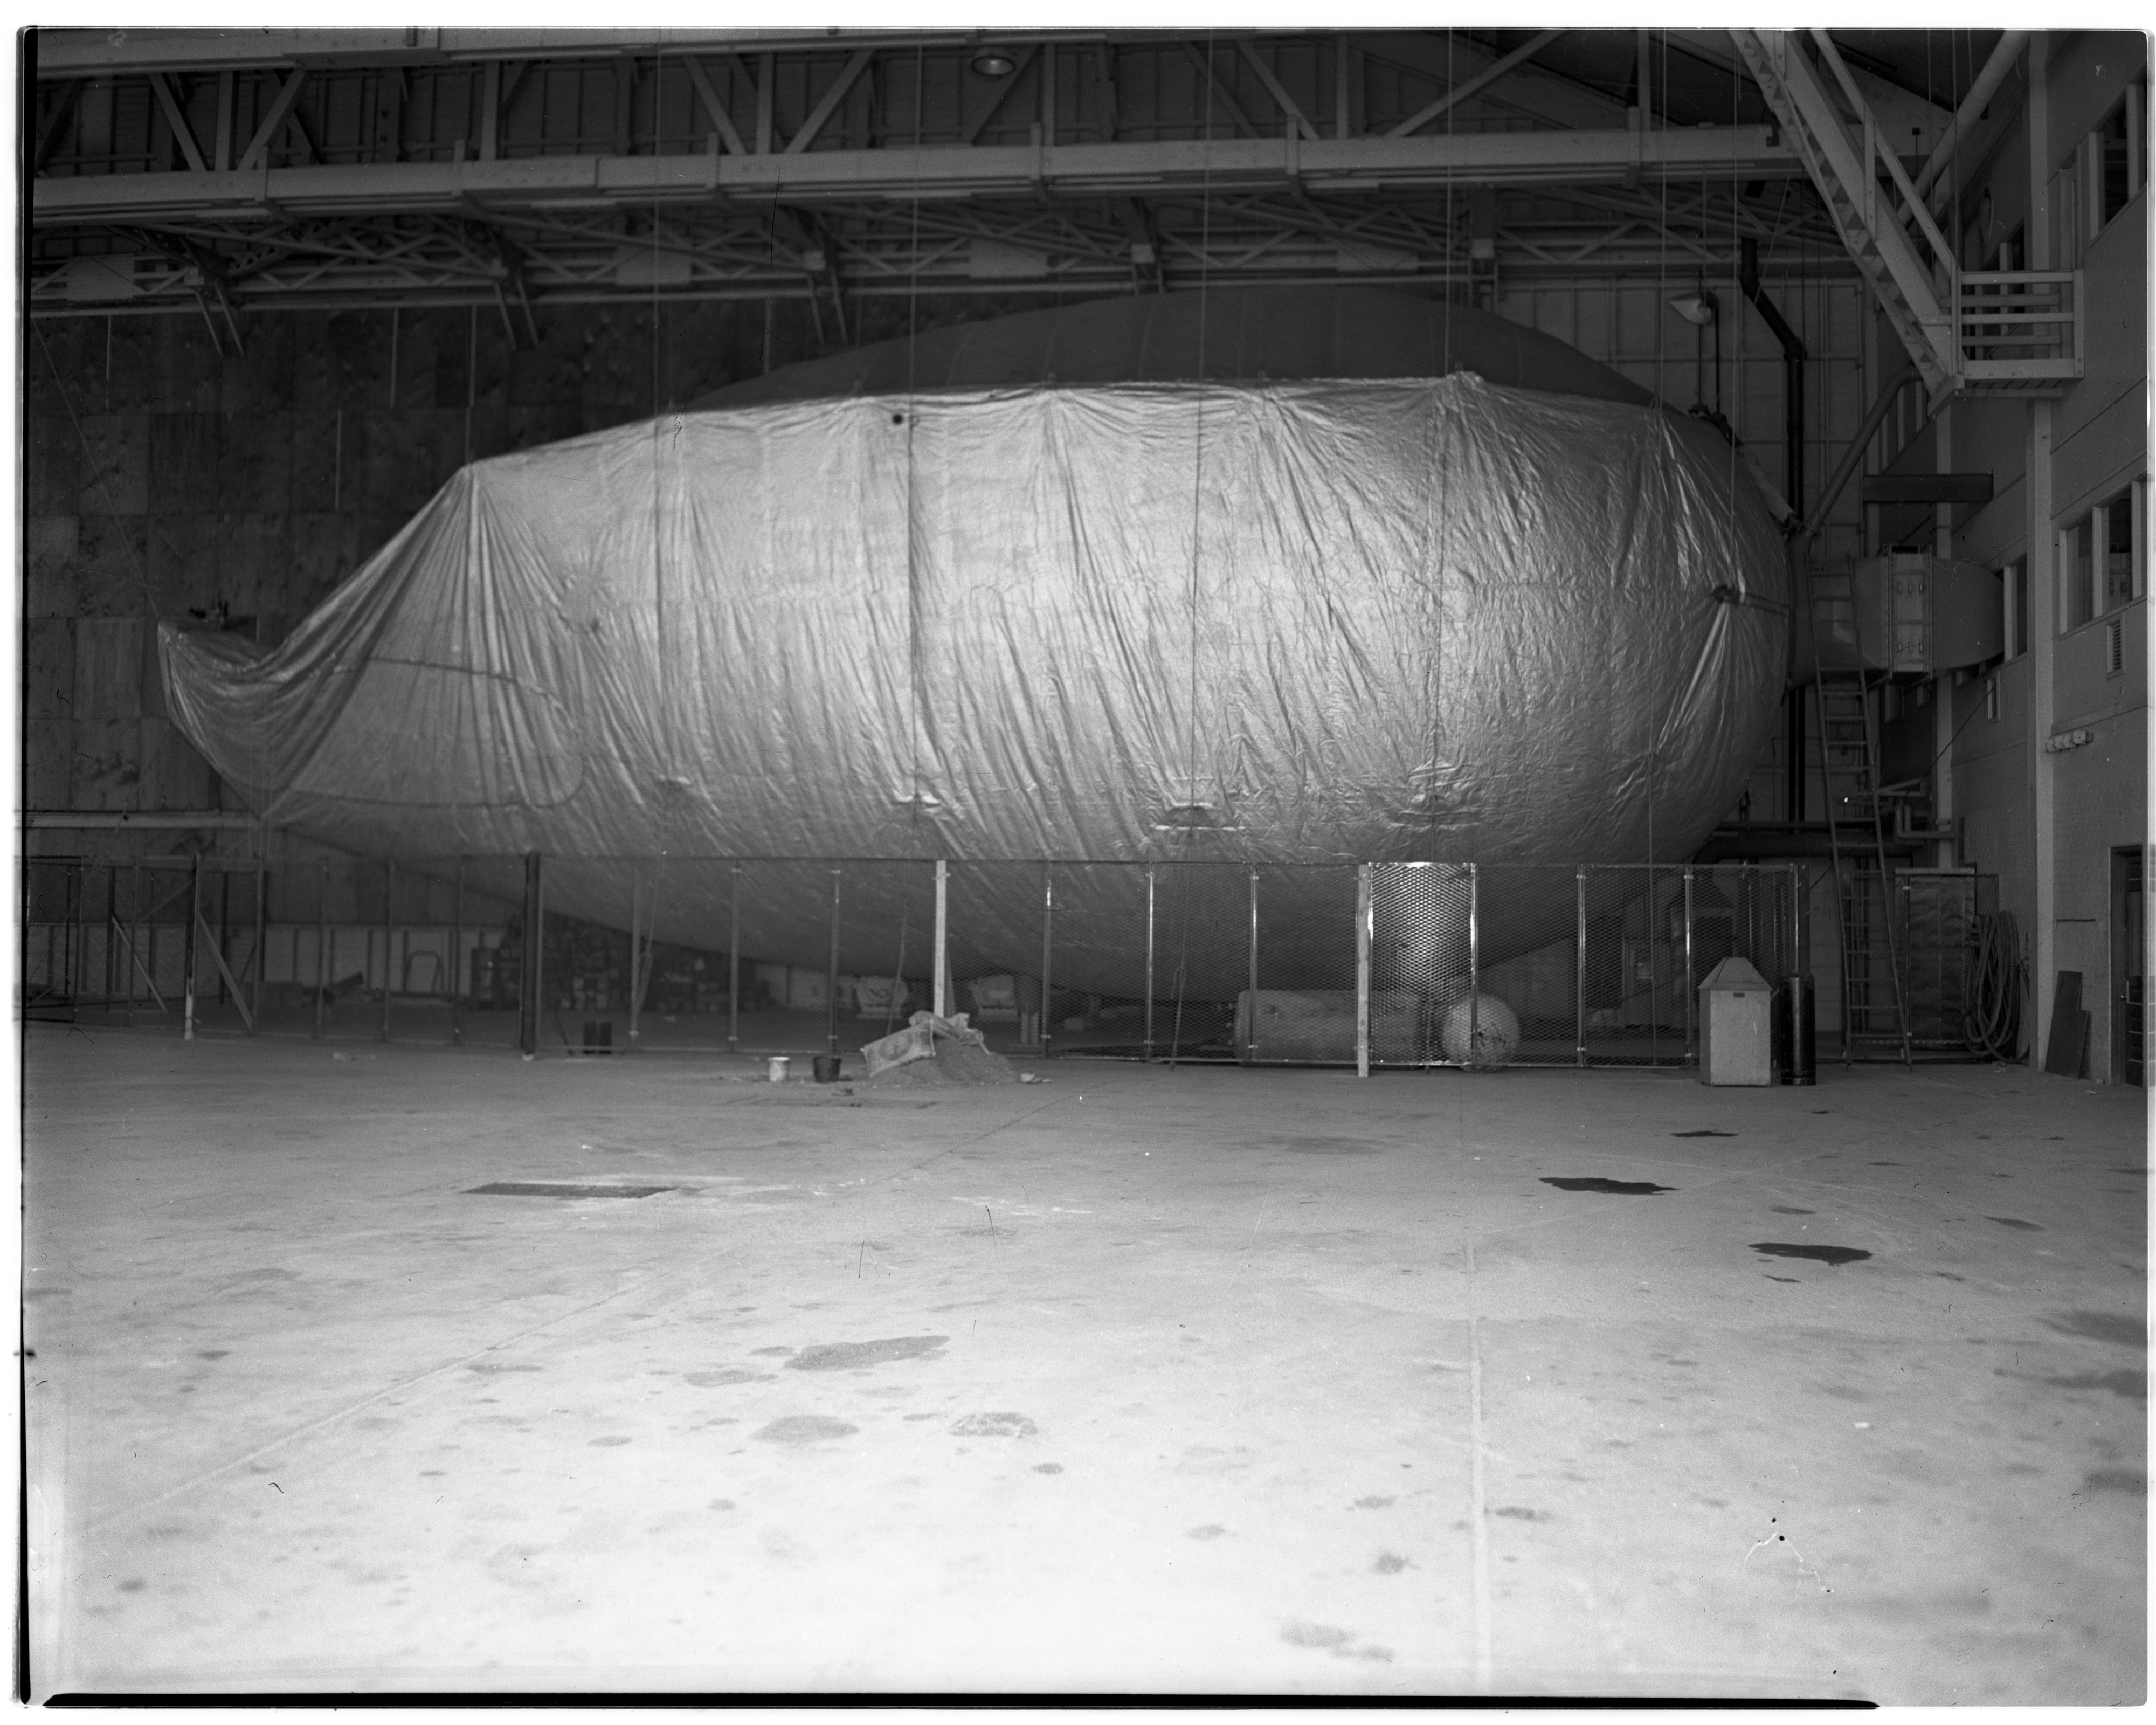 Barrage Balloon at U-M's Supersonic Wind Tunnel at Willow Run Laboratories, April 1947 image